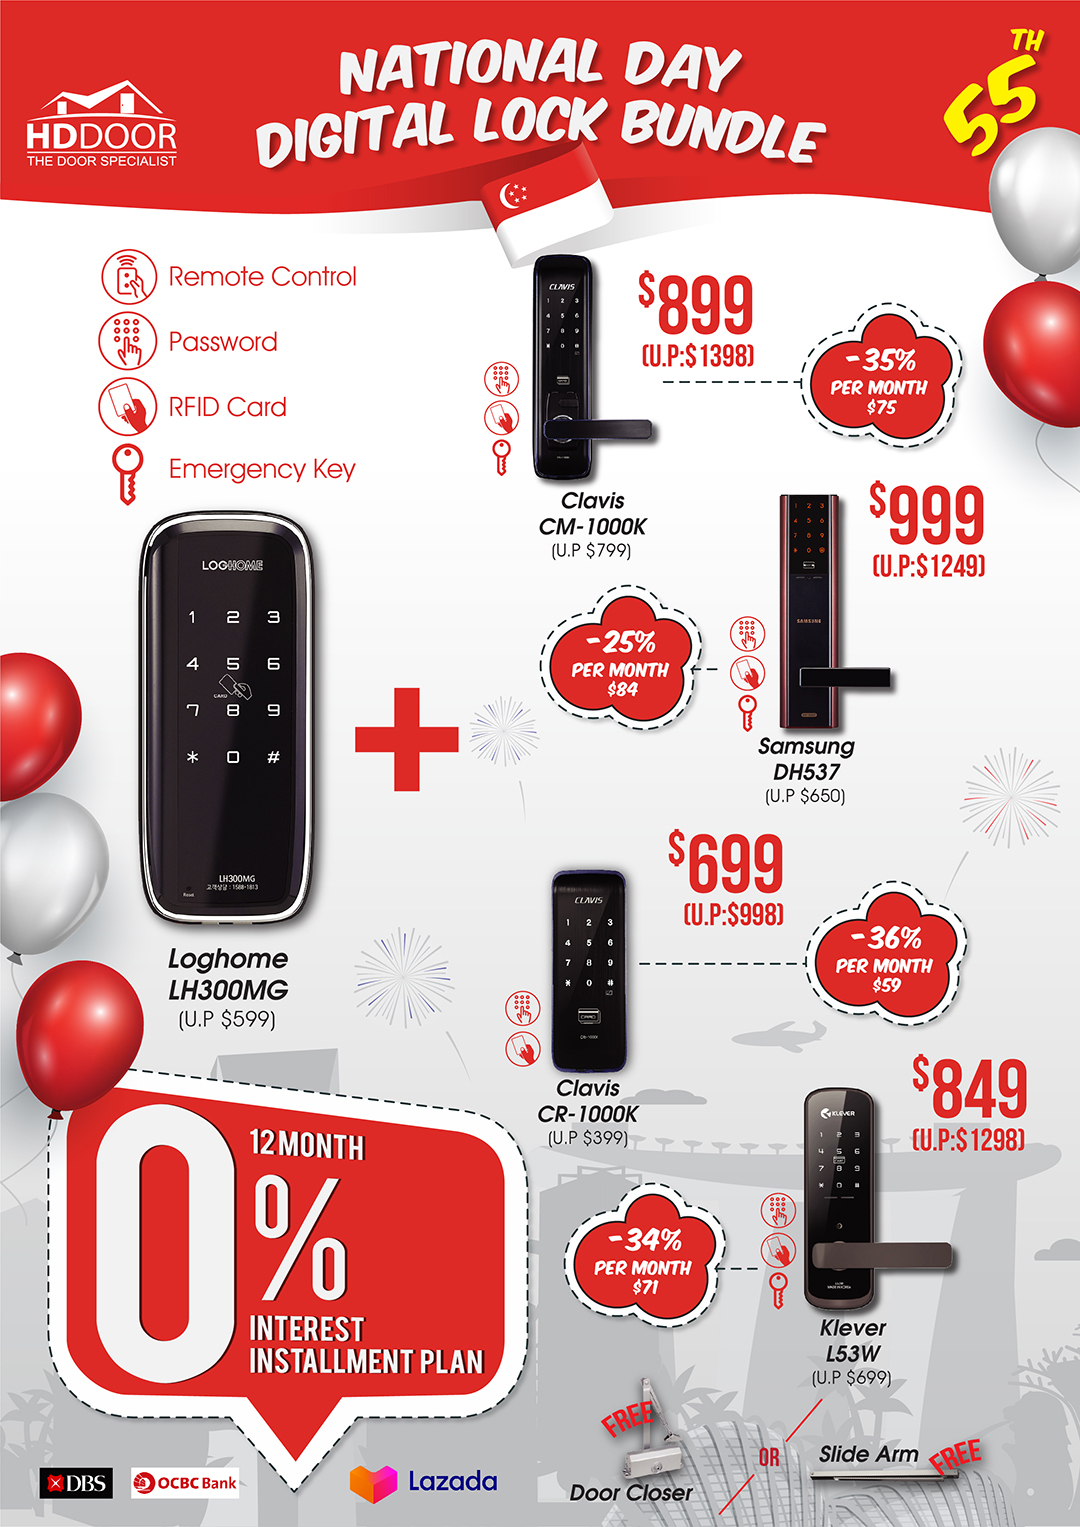 55th national day digitallock bundle promotion sale 2020